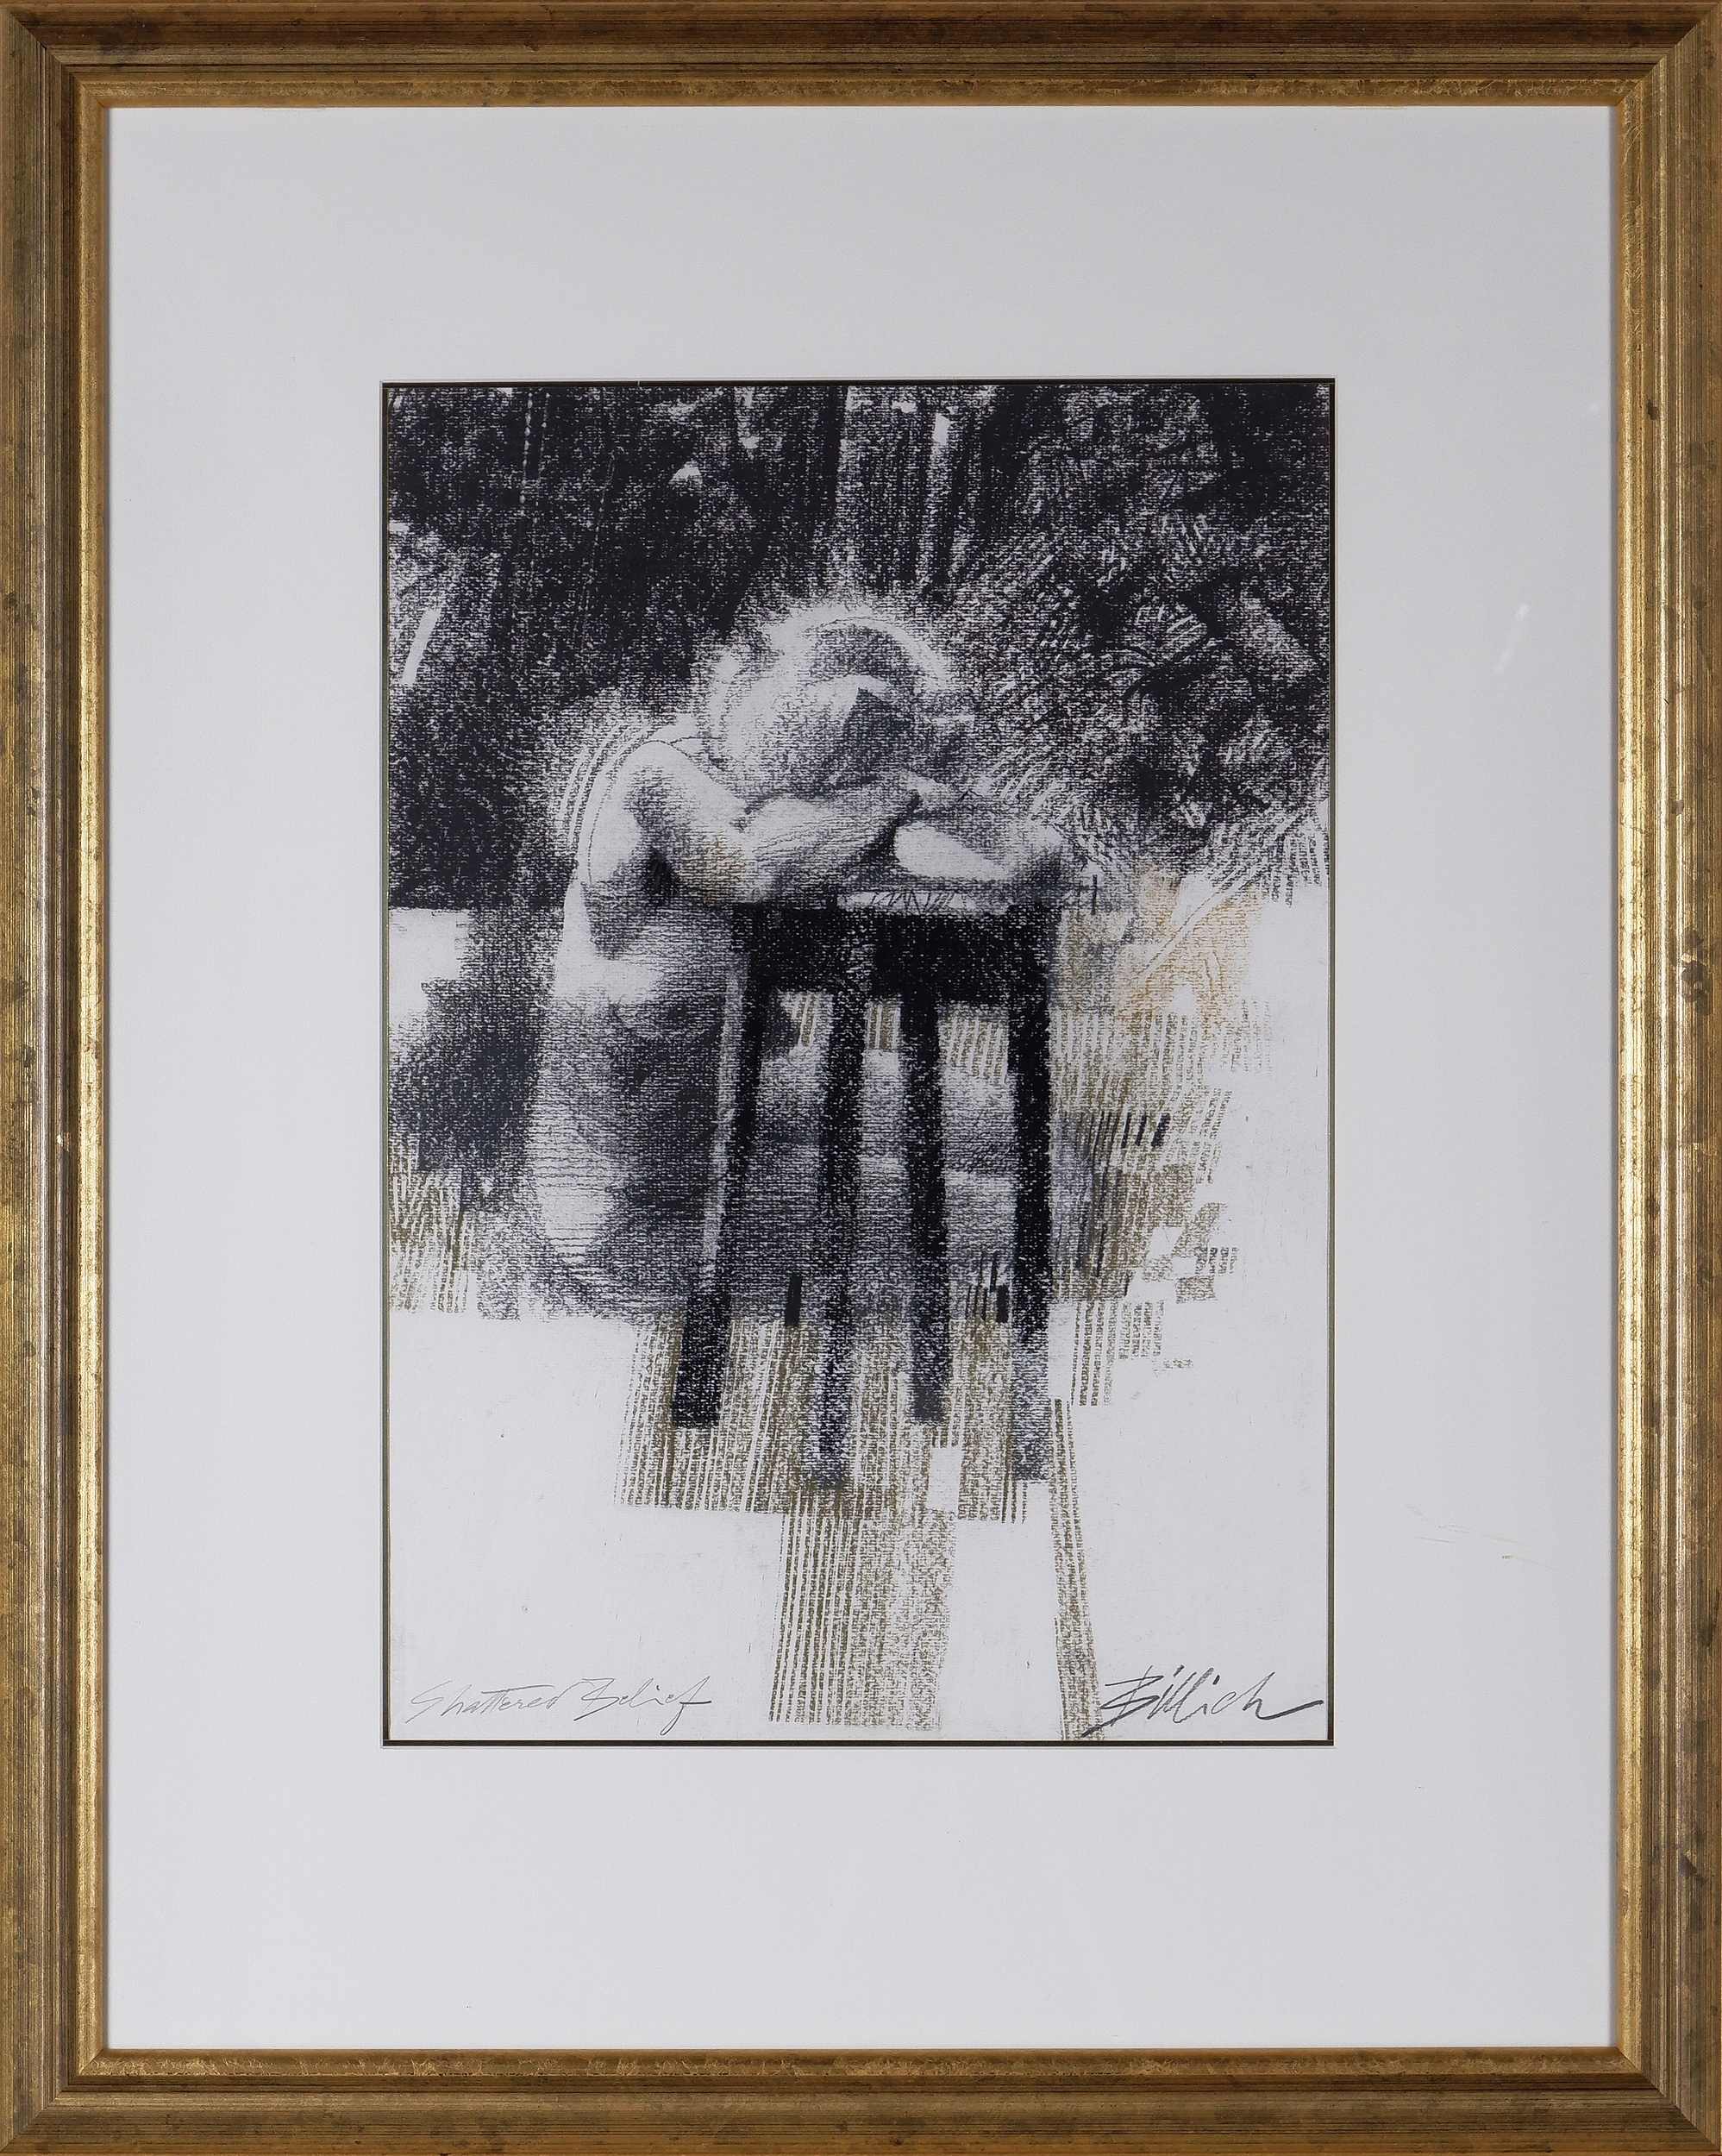 'Charles Billich (born 1934), Shattered Belief, Charcoal on Paper'